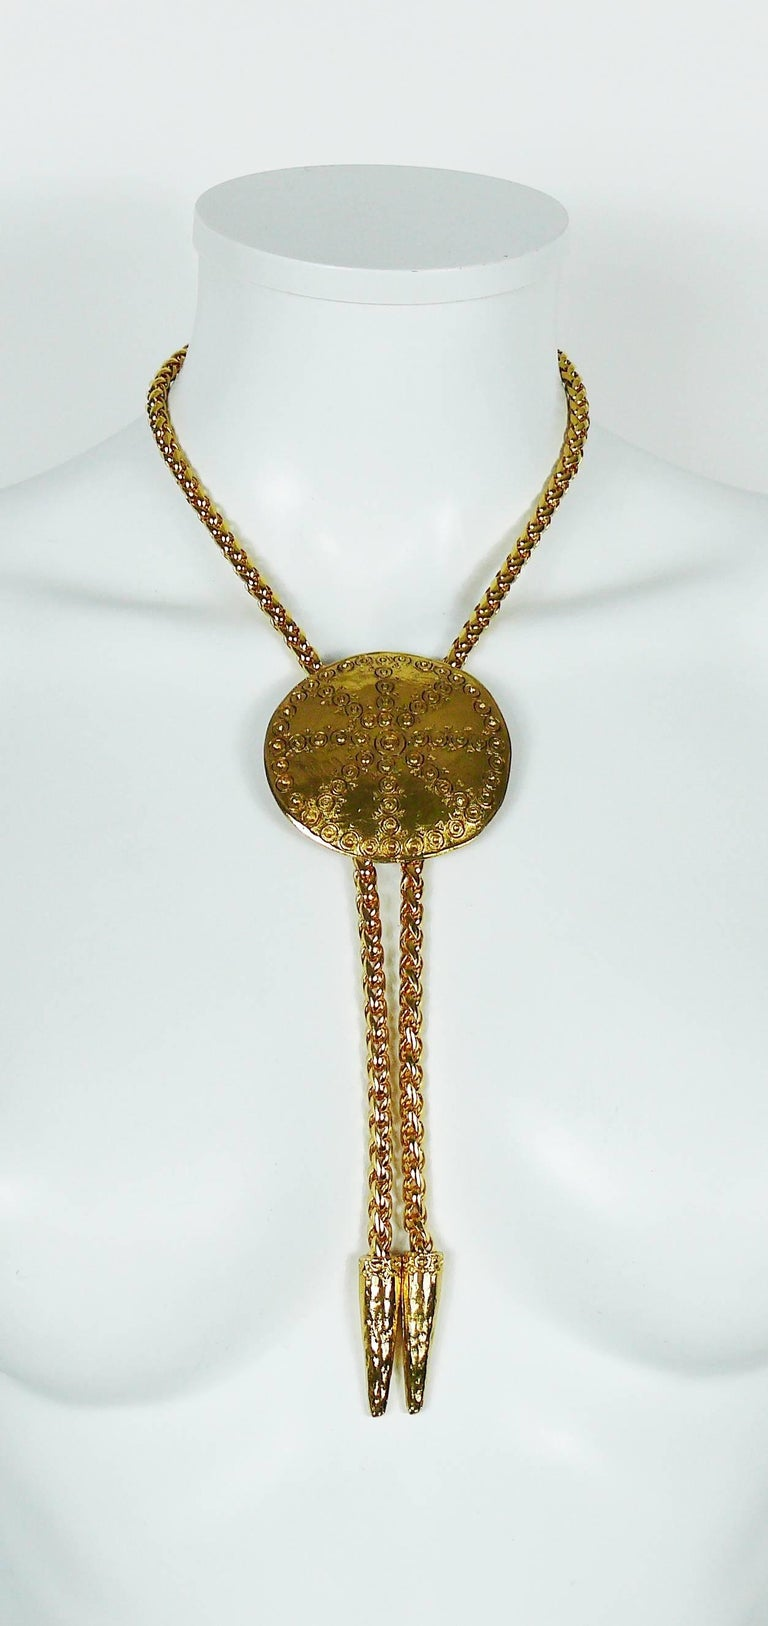 YVES SAINT LAURENT vintage gold toned lariat necklace featuring a large ethnic disc.  The height of the disc is adjustable.  Embossed YSL Made in France.  Indicative measurements : max. length worn (including tassels) approx. 33 cm (12.99 inches) /